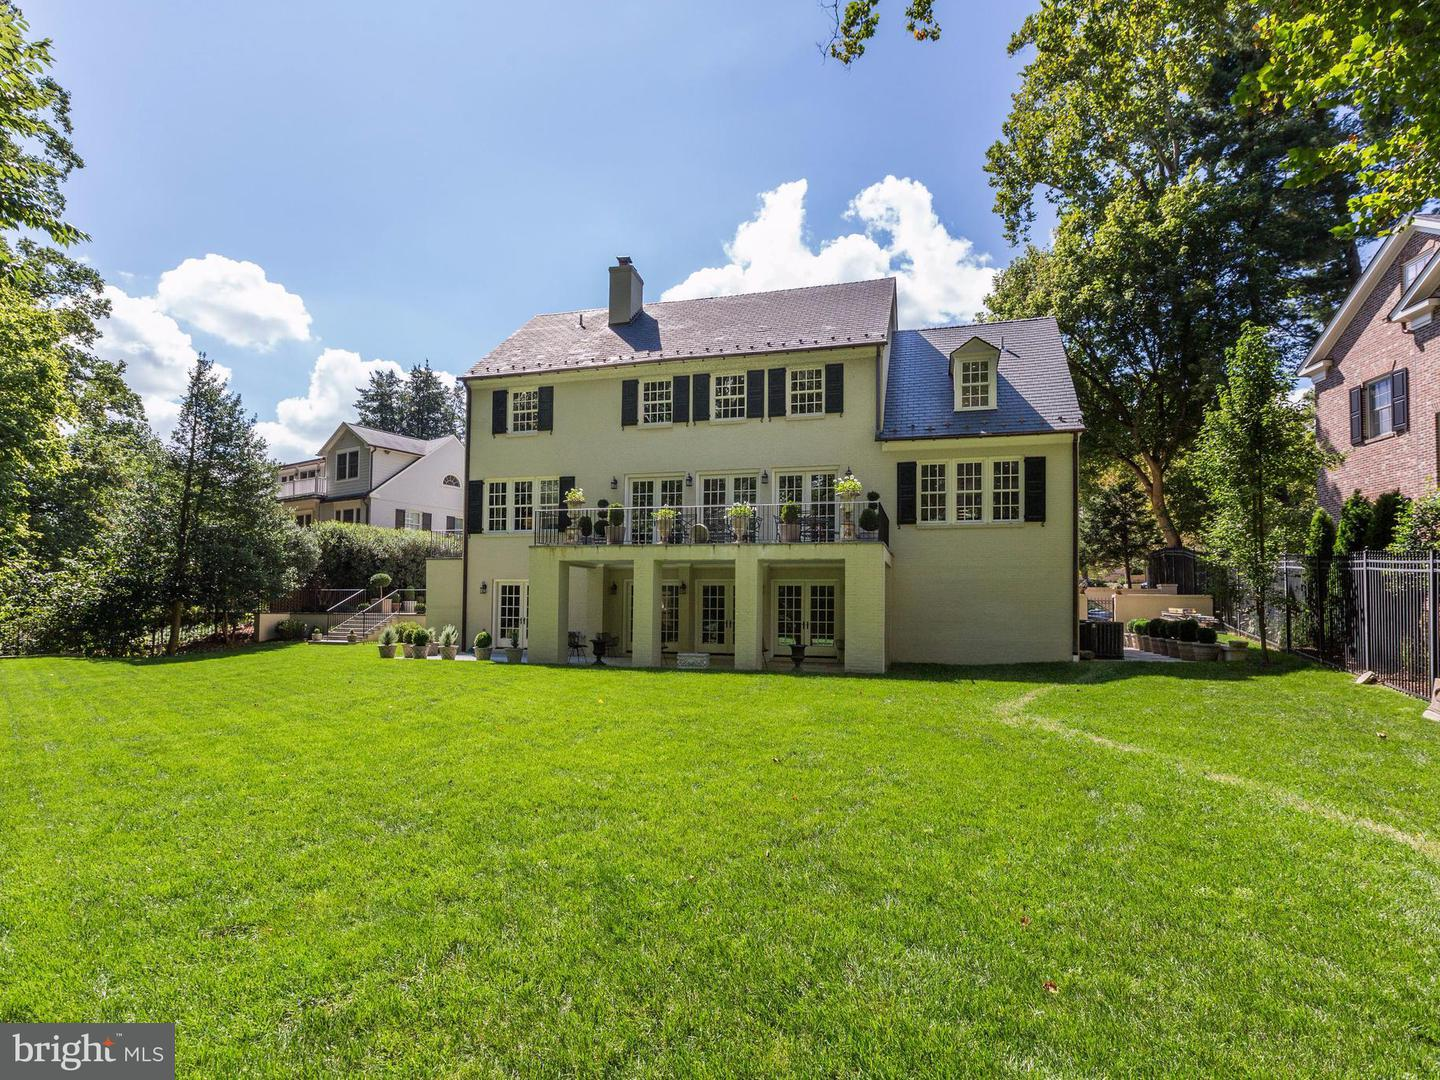 Additional photo for property listing at 1805 Hoban Rd NW  Washington, District Of Columbia 20007 United States